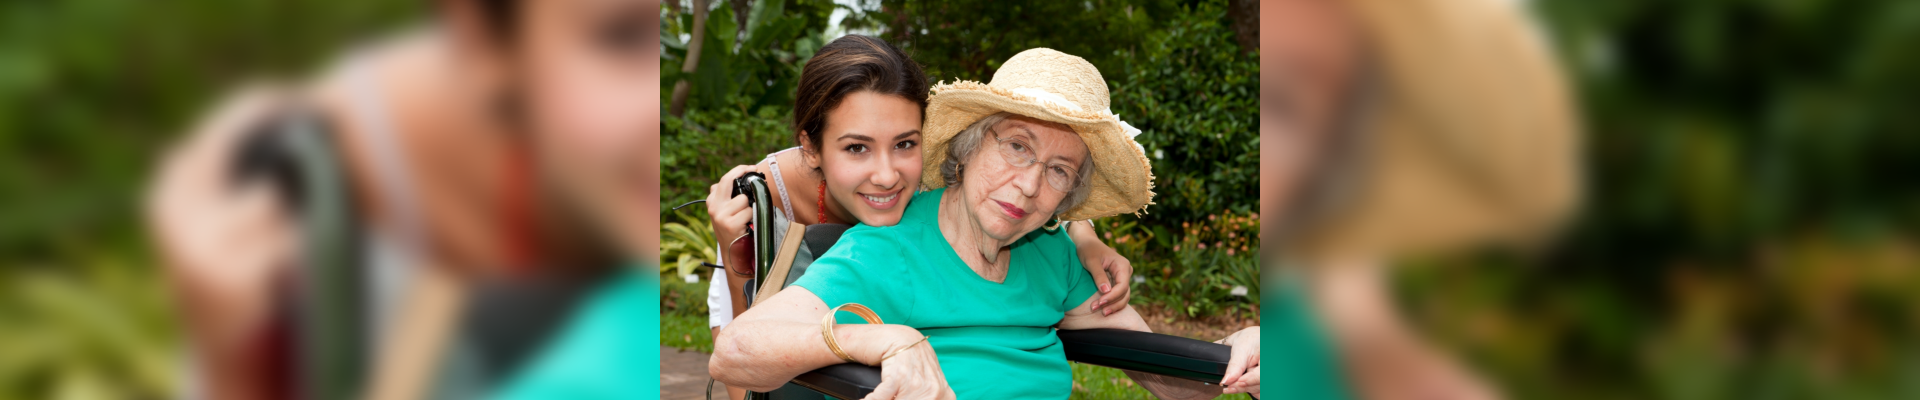 caregiver and patient in wheelchair smiling